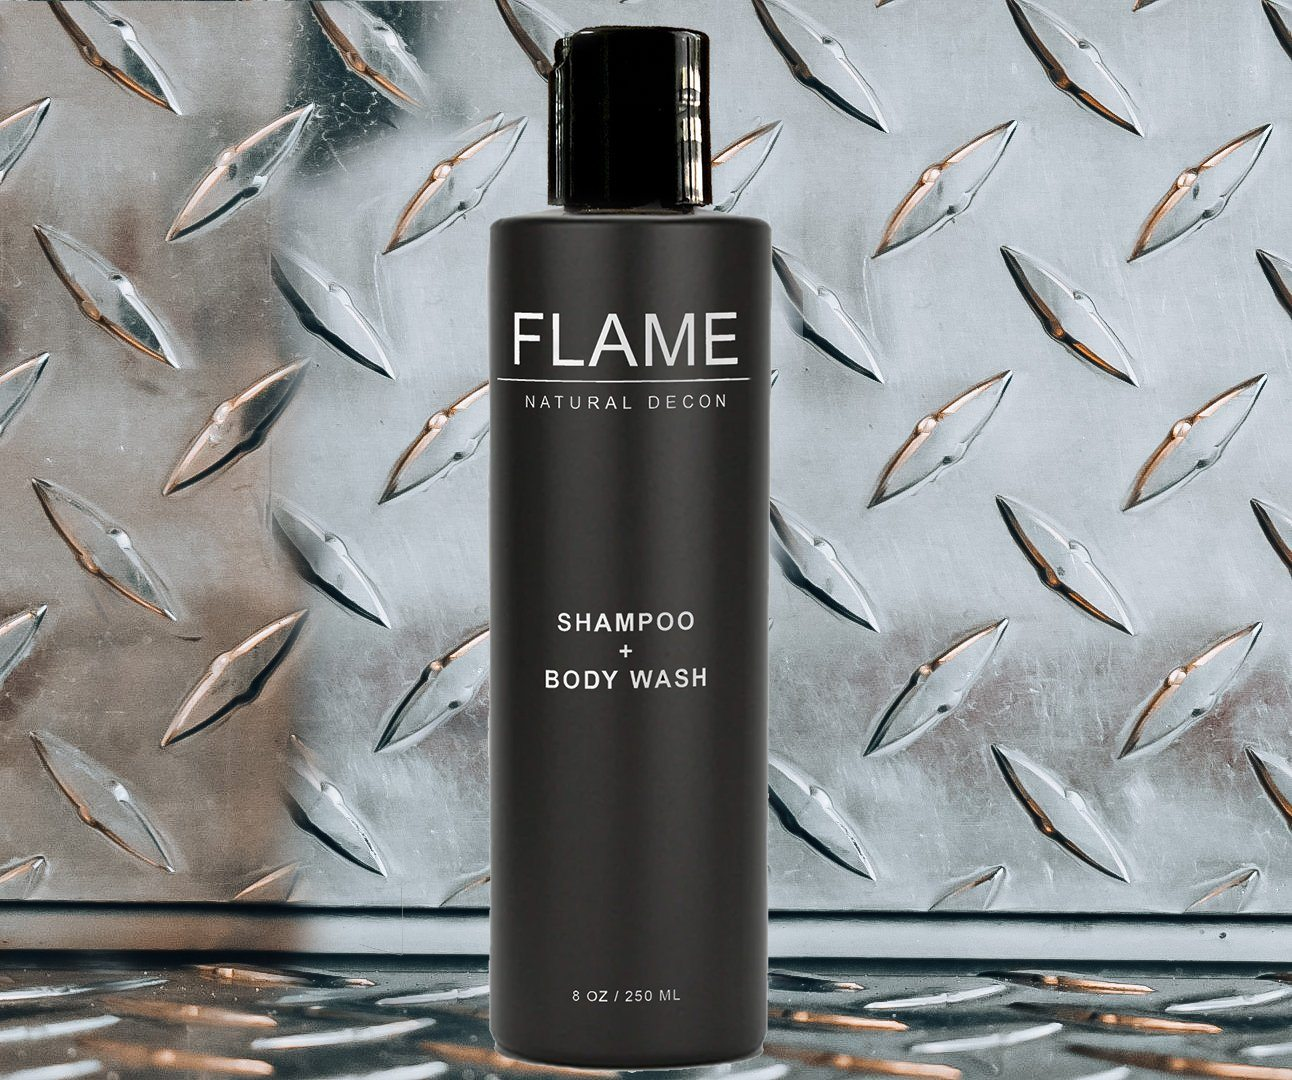 Shampoo + Body Wash FLAME Natural Decon